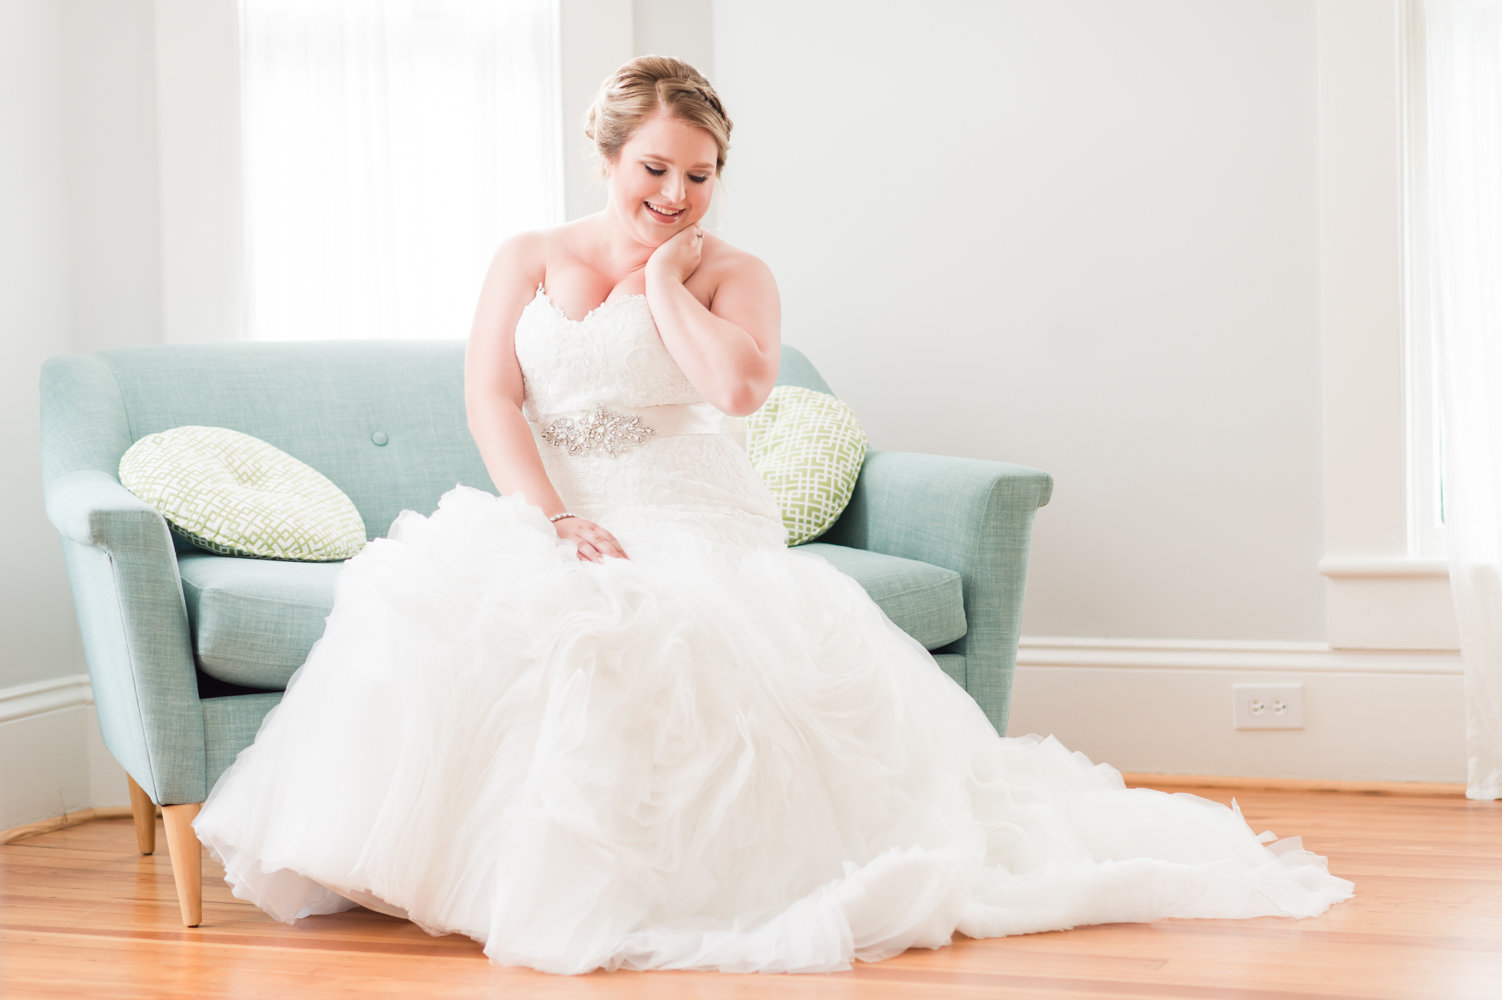 bridal-portraits-christina-forbes-photography-28